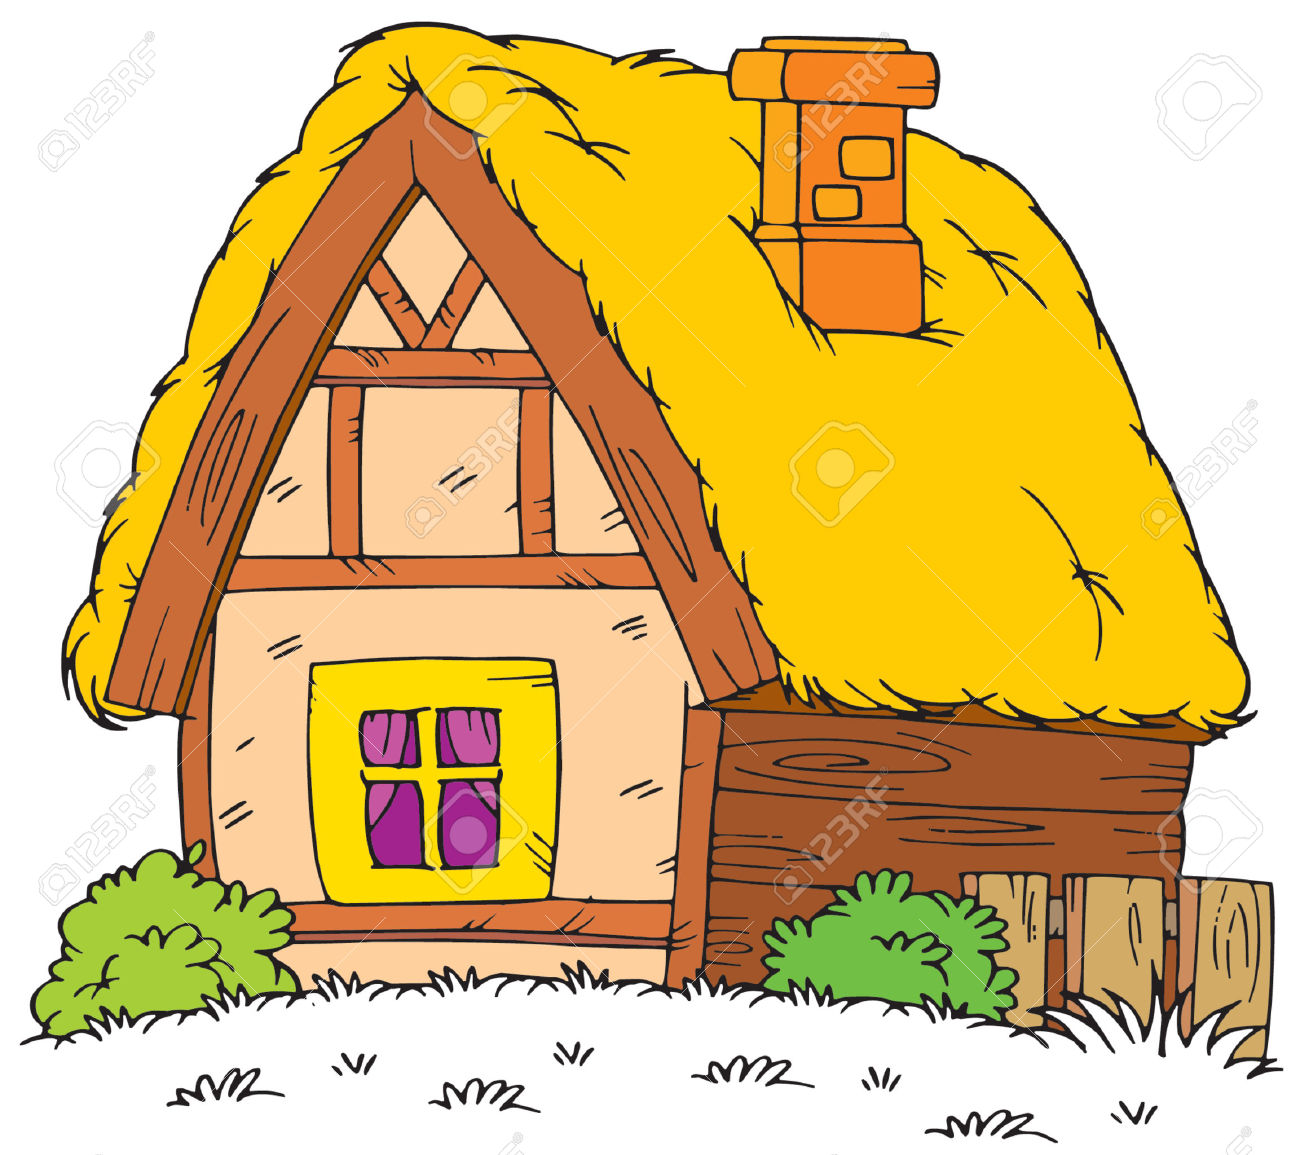 Old House clipart old village Home Rural Free clipart Old